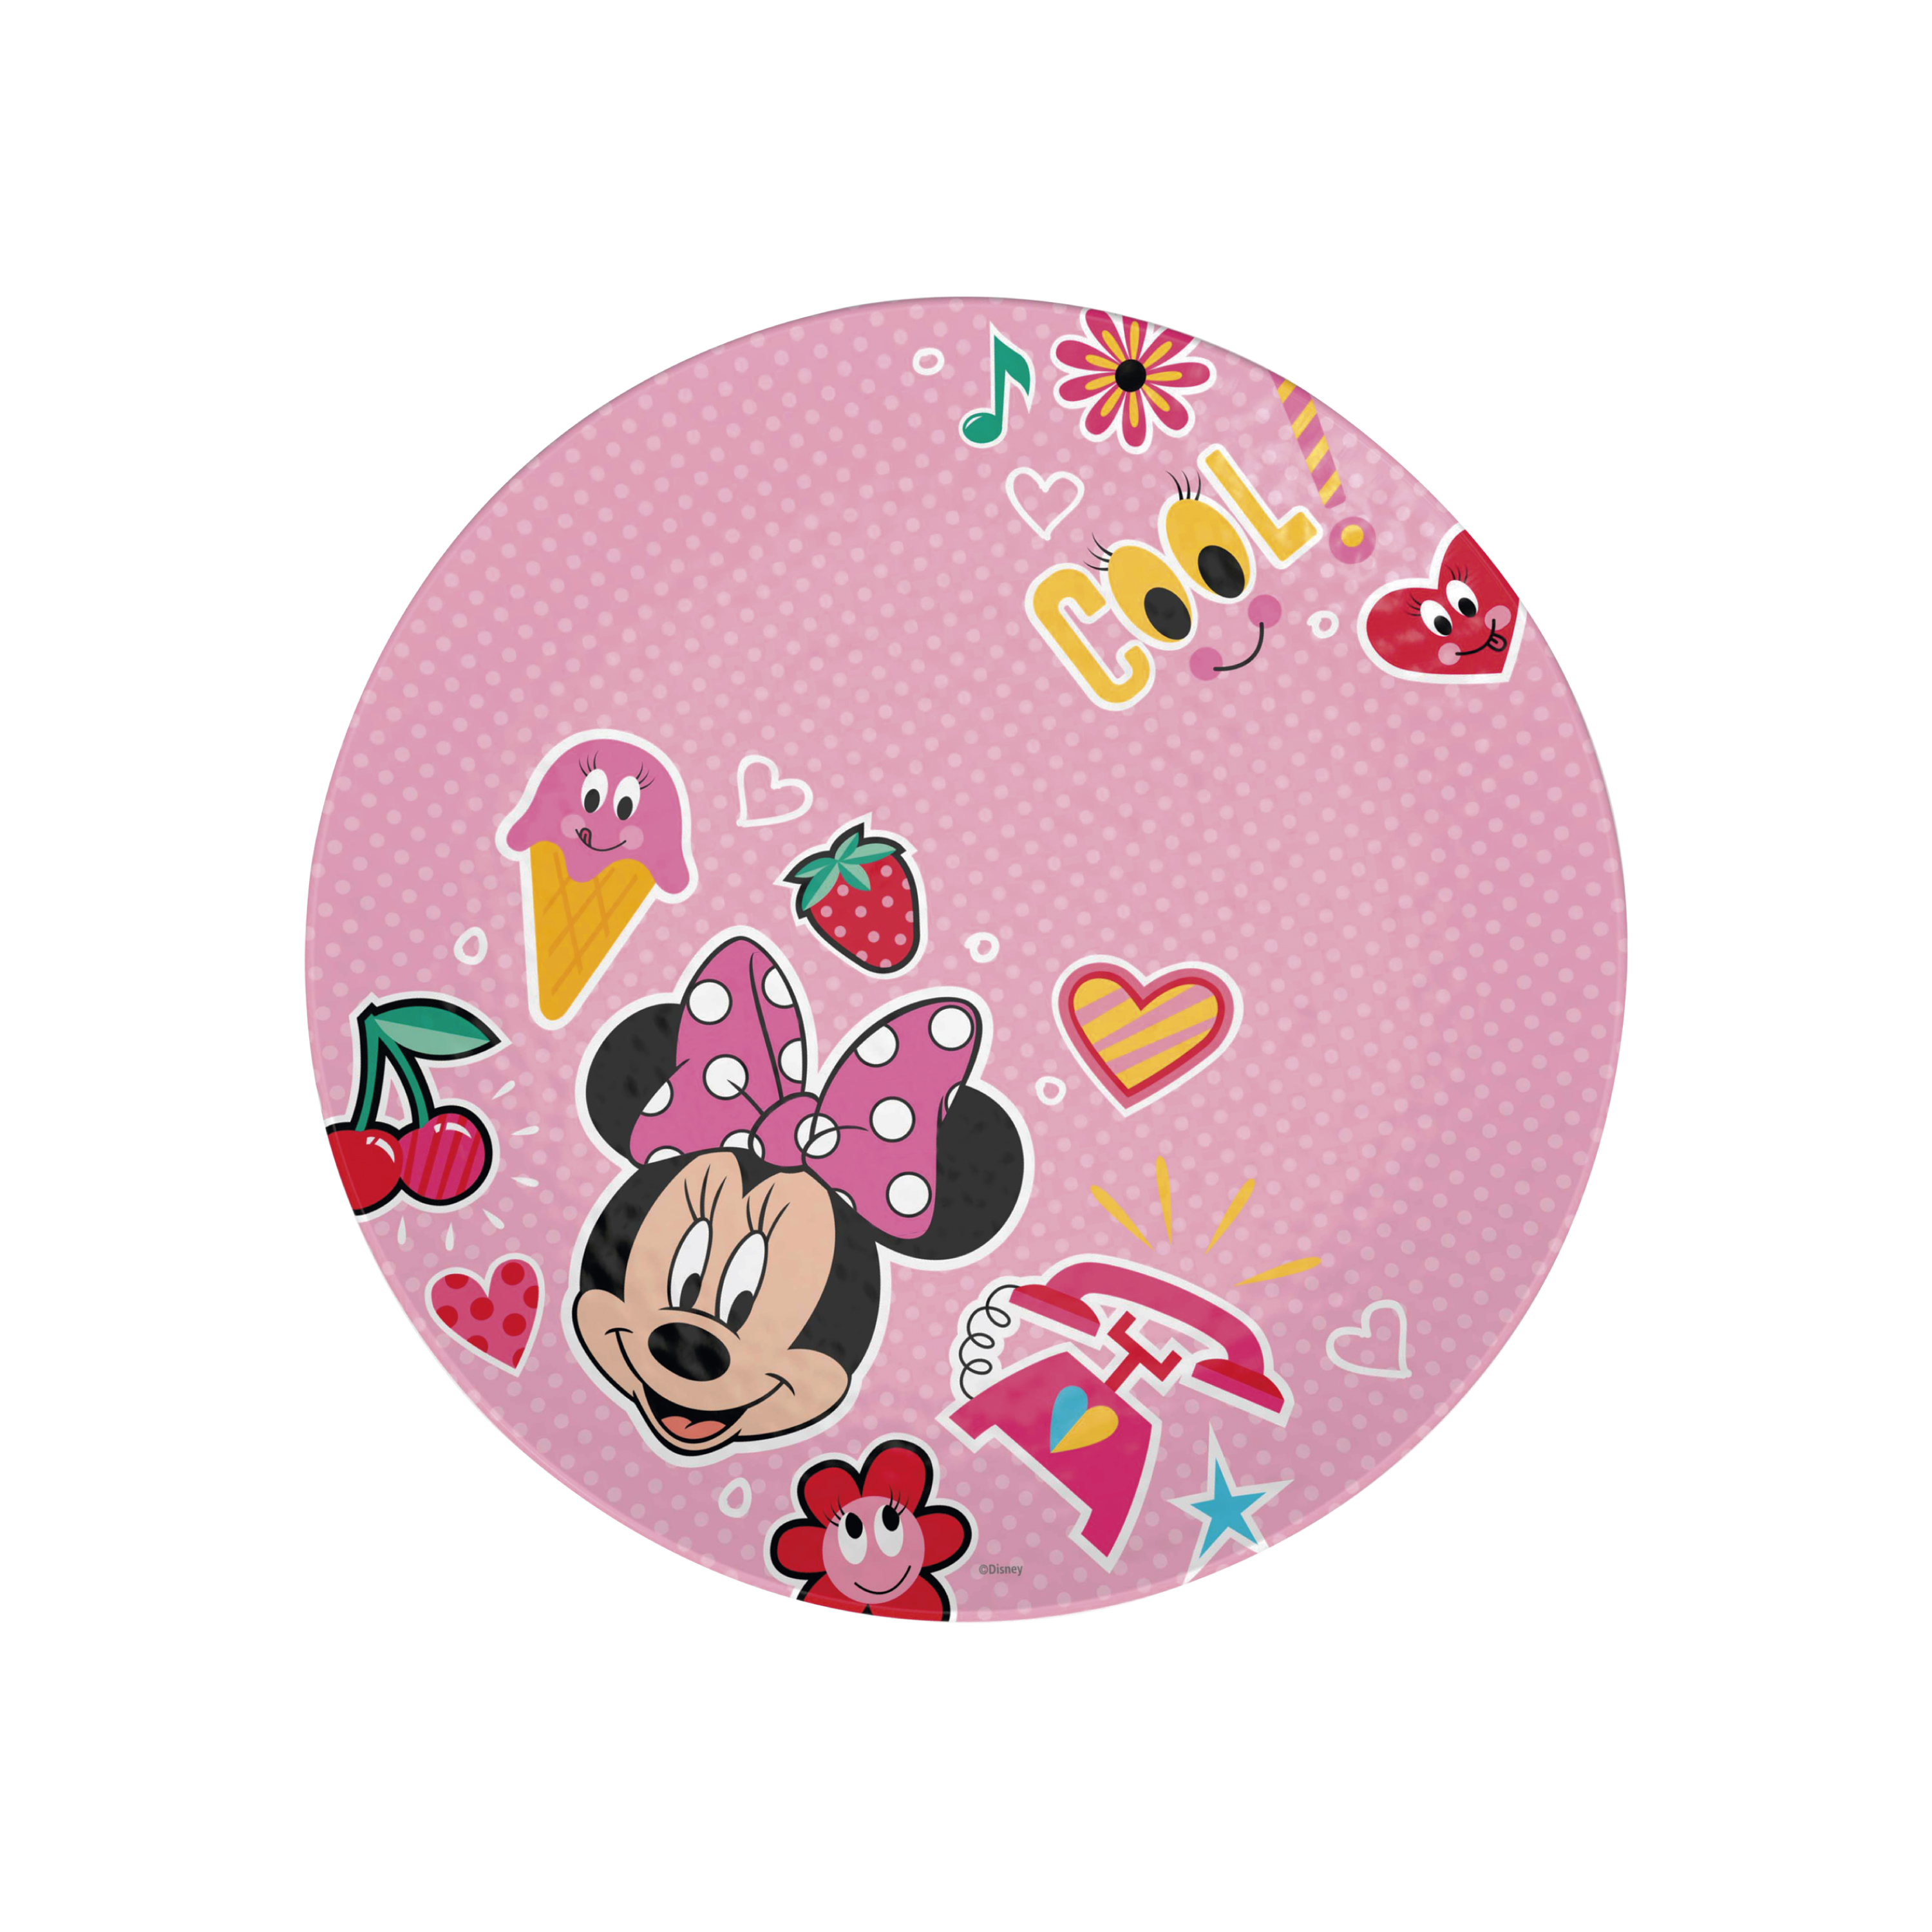 Disney Kids 9-inch Plate and 6-inch Bowl Set, Minnie Mouse, 2-piece set slideshow image 4